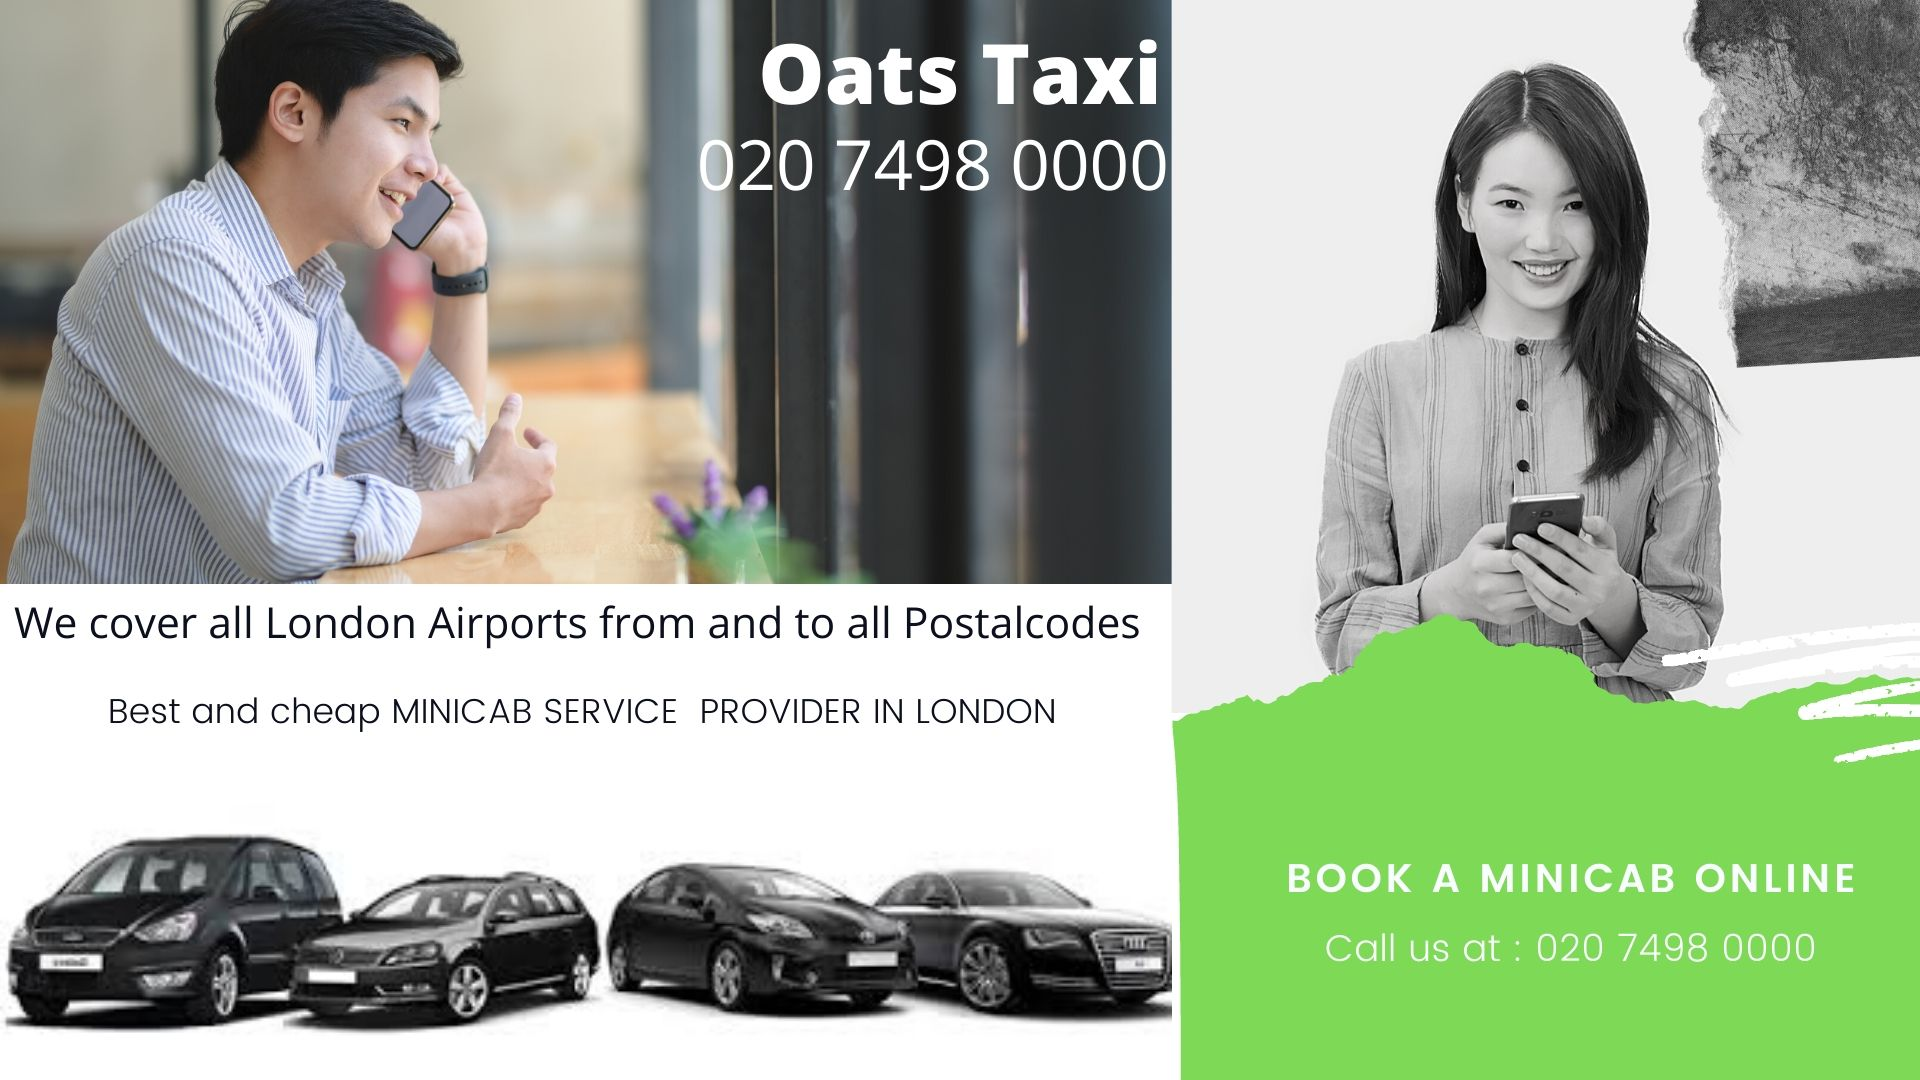 Minicab Near BRYNMAER ROAD, Battersea SW11, Minicab From Battersea SW11 To Gatwick Airport